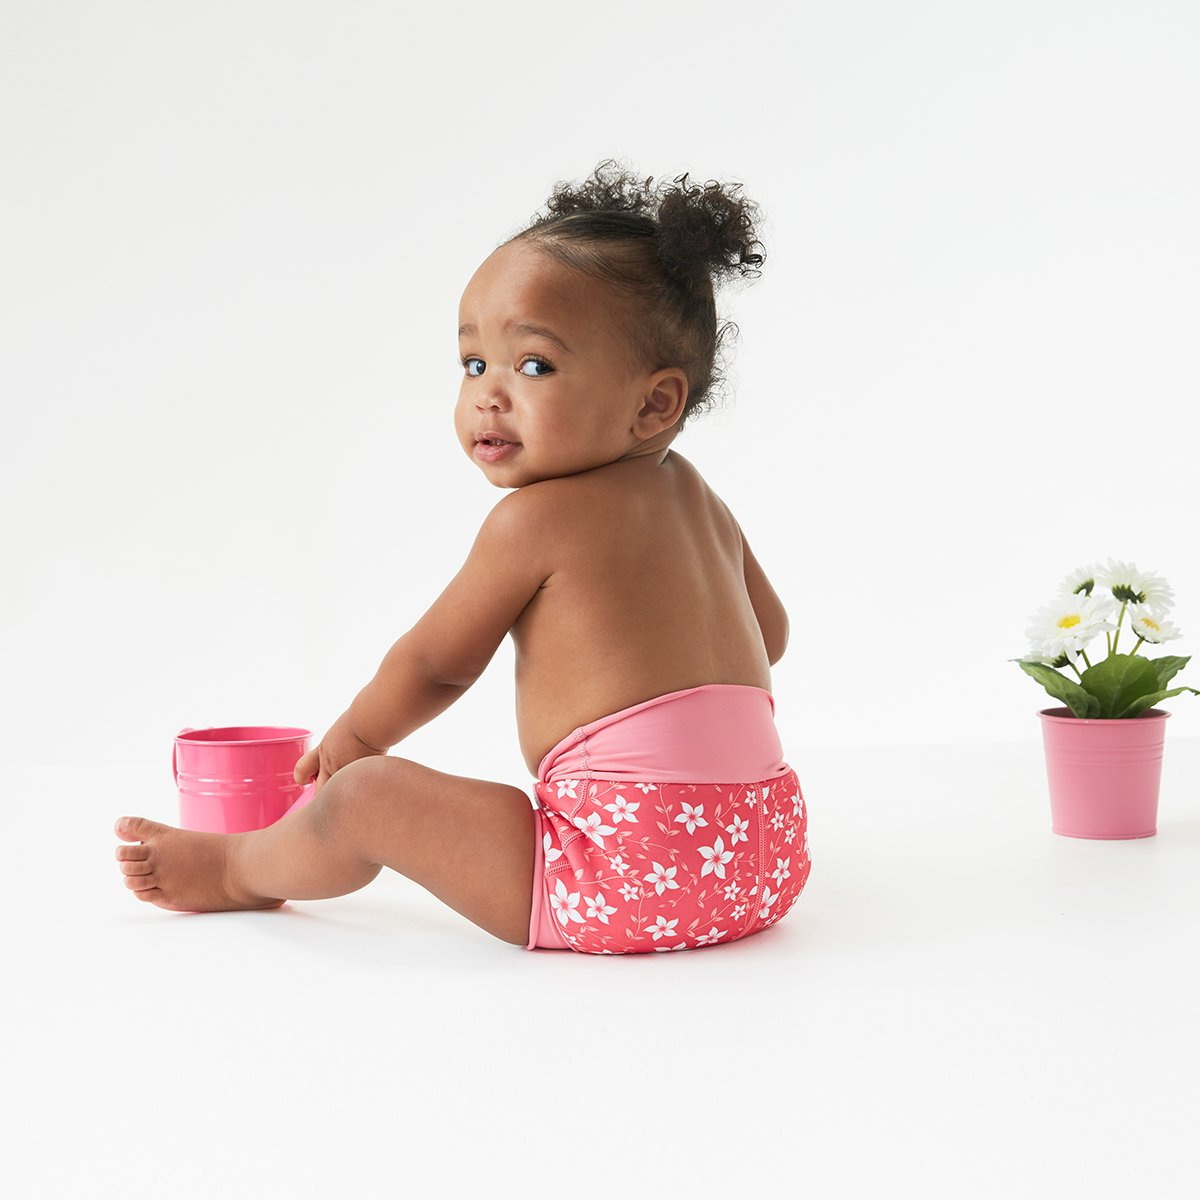 Blossom Splash About Baby Kids New Improved Happy Nappy,Pink ,1-2 Years